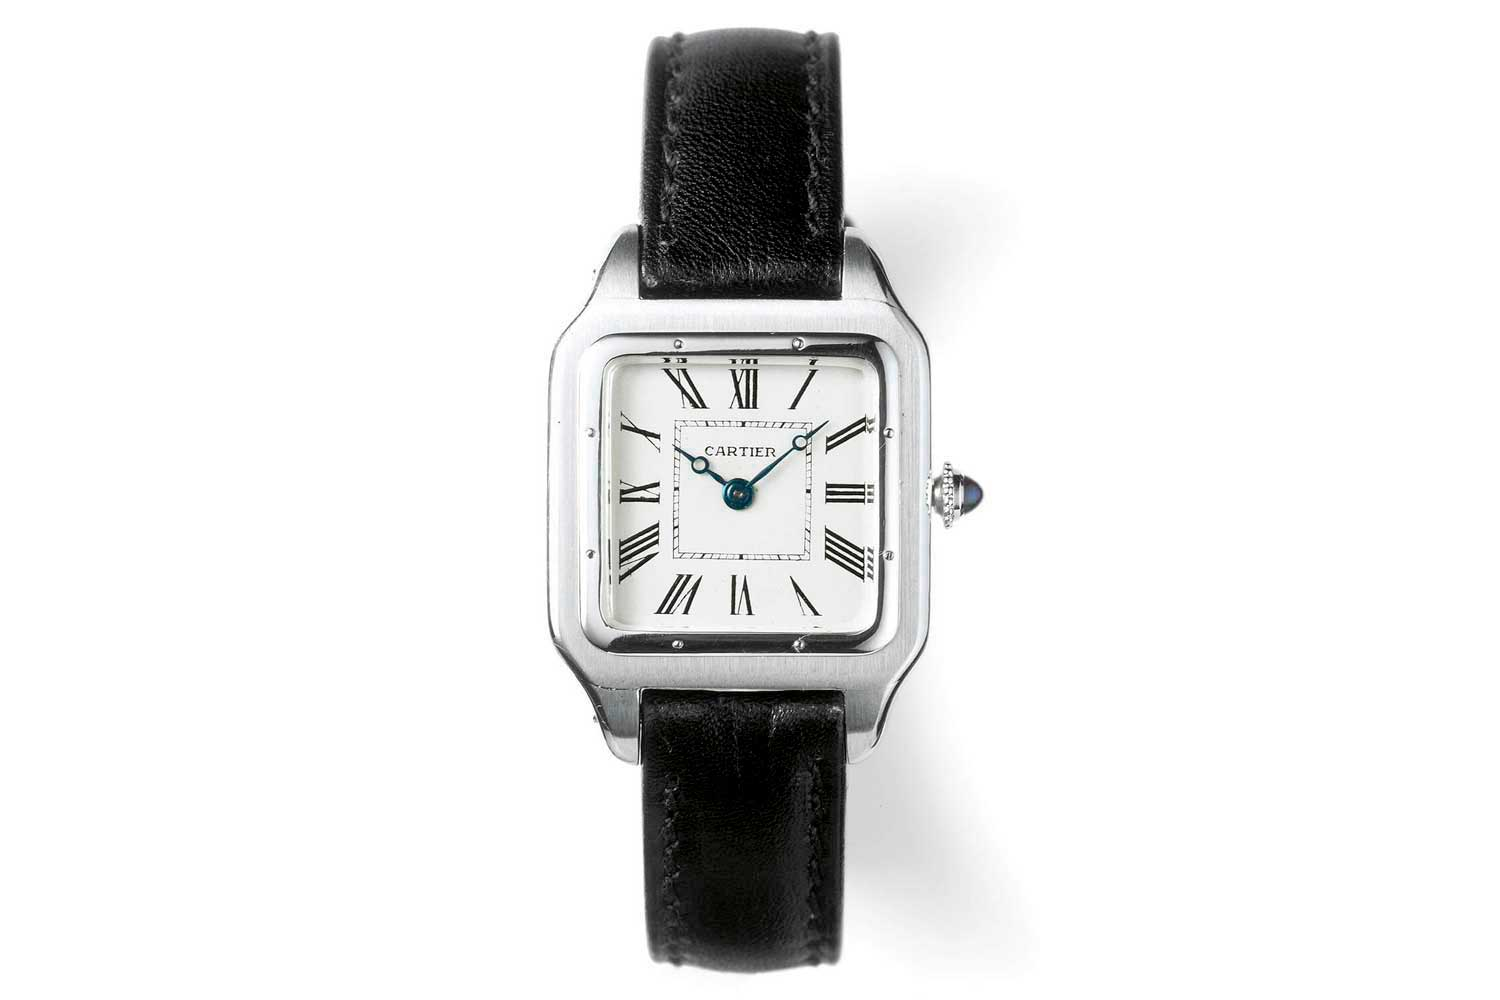 The Cartier Santos was the world's first pilot's watch and also the first square watch meant to be worn on the wrist